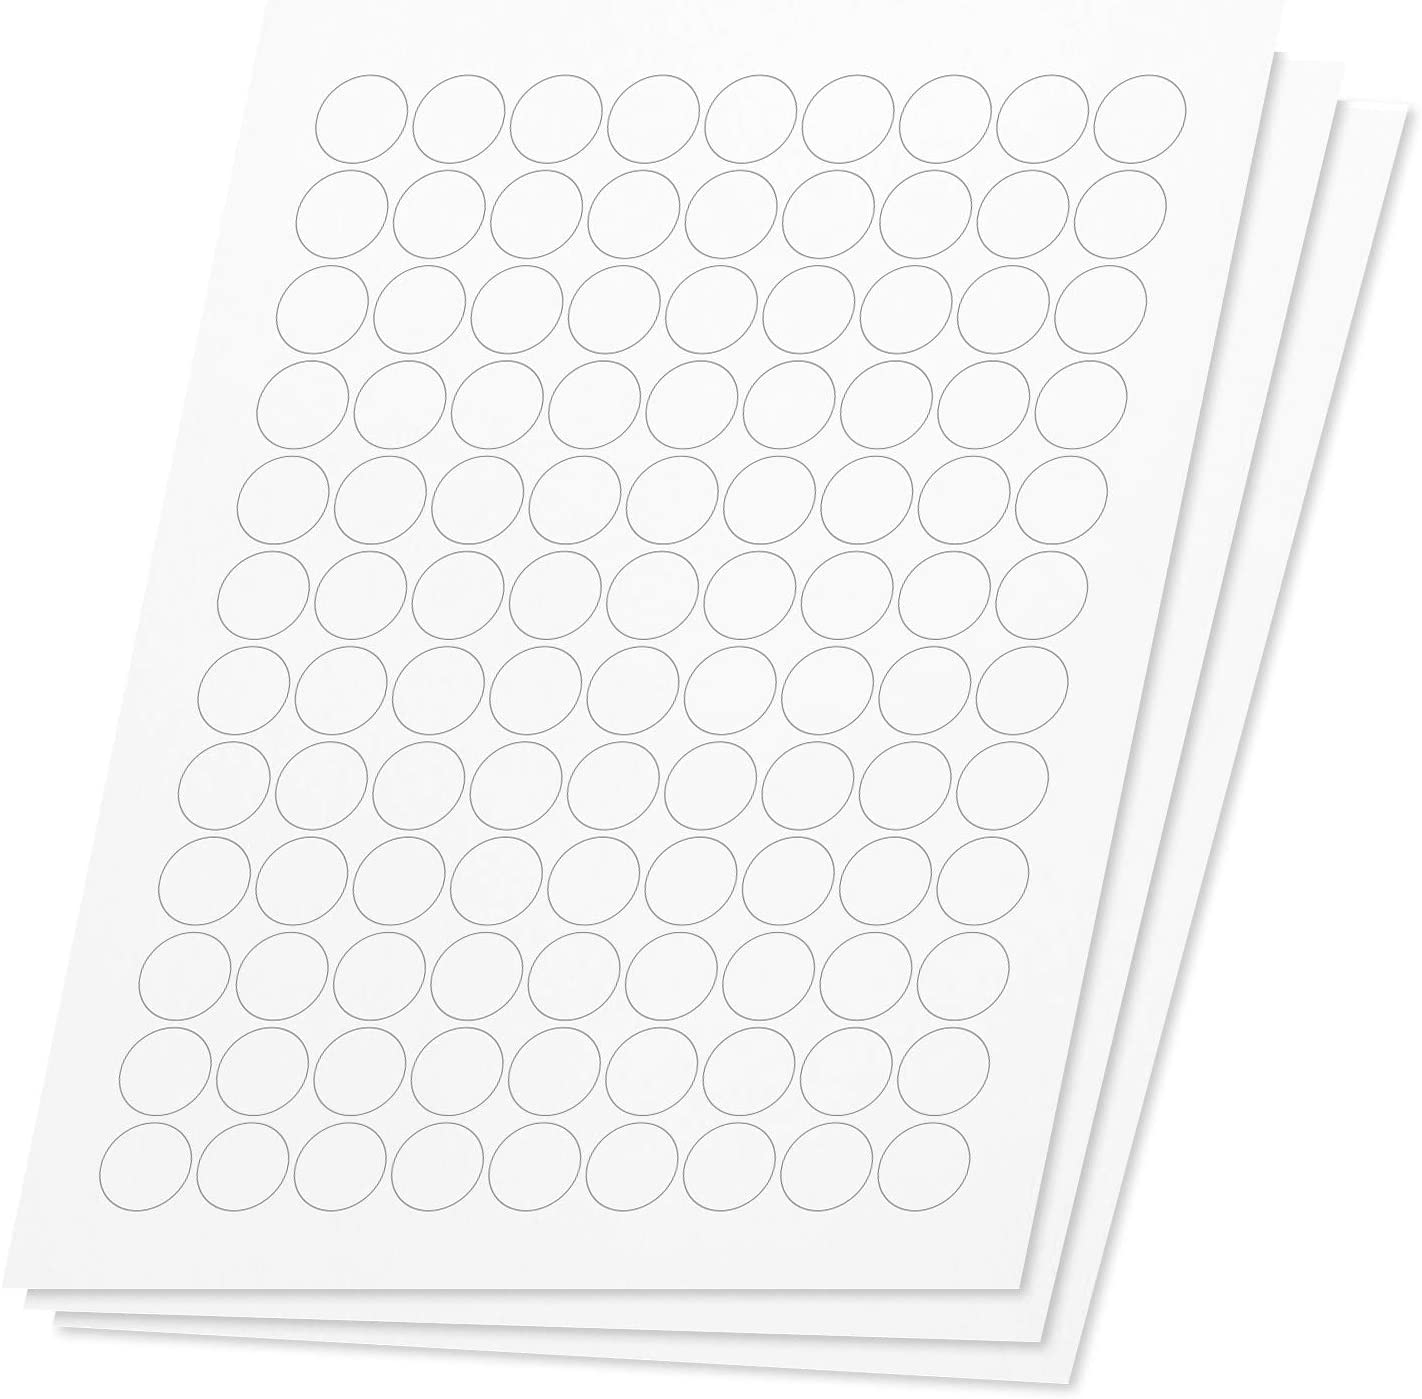 OfficeSmartLabels Round Circle Dot 3/4 inch Diameter Stickers Labels for Laser & Inkjet Printers, 0.75 Inch, 108 per Sheet, White, 1080 Labels, 10 Sheets